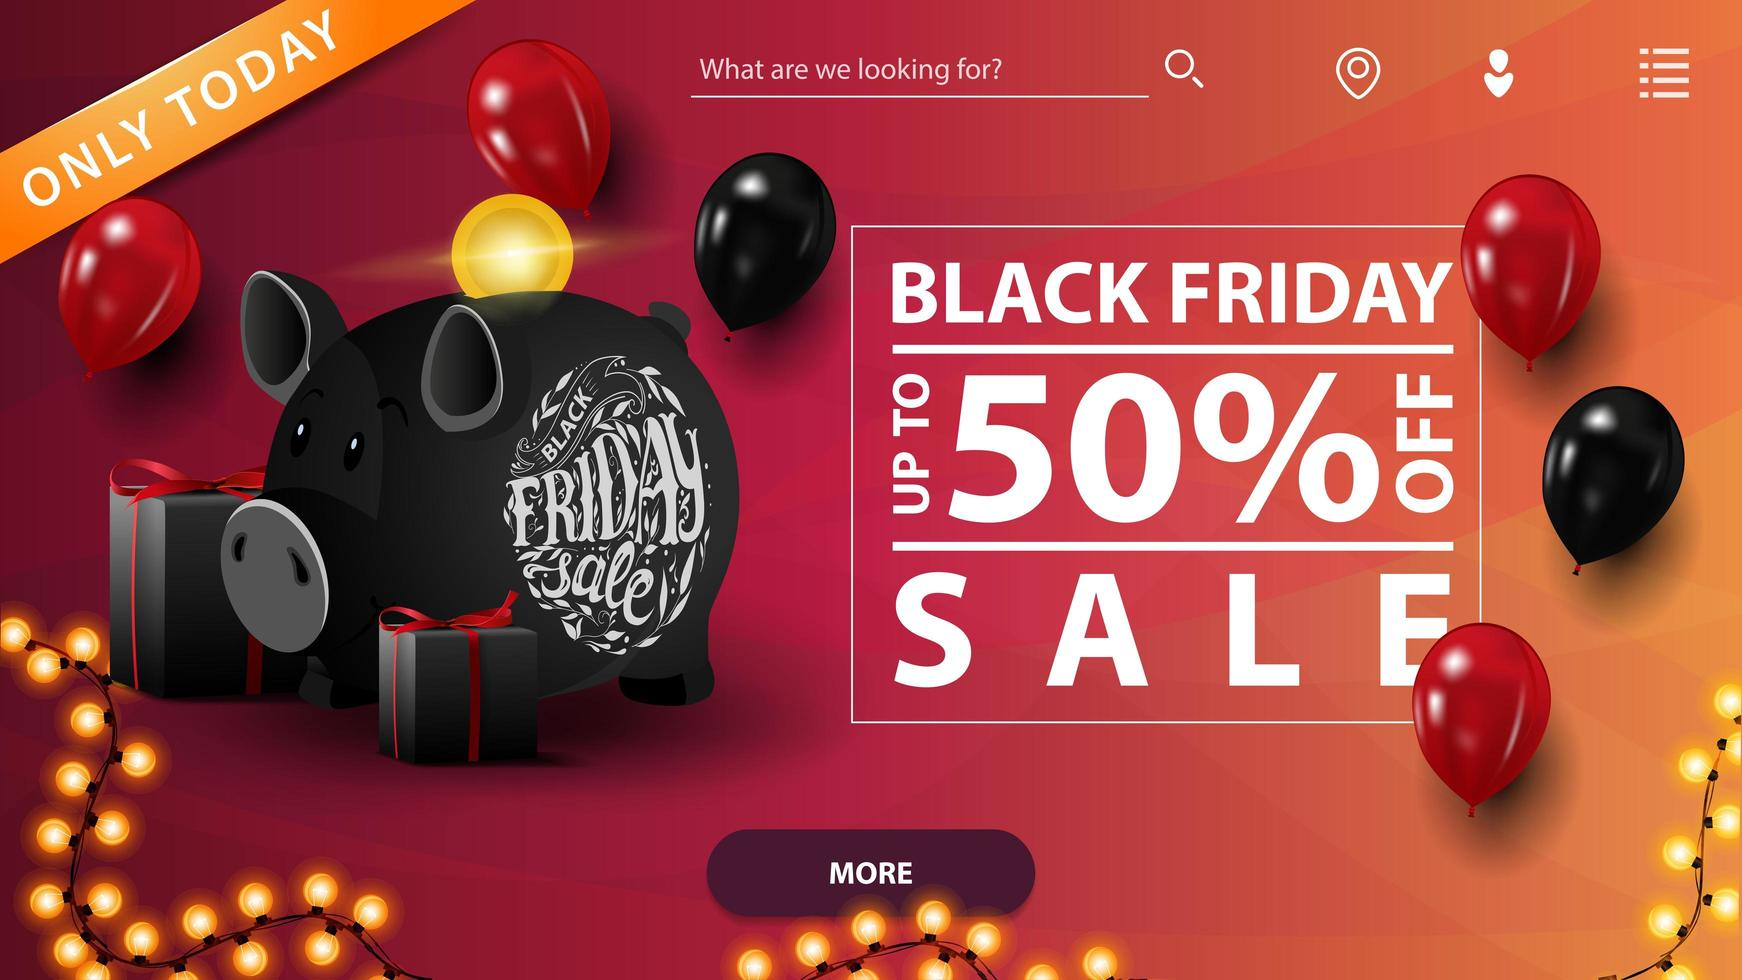 Black Friday sale, up to 50 off. Discount banner for website with balloons, gifts, piggy bank and garland vector